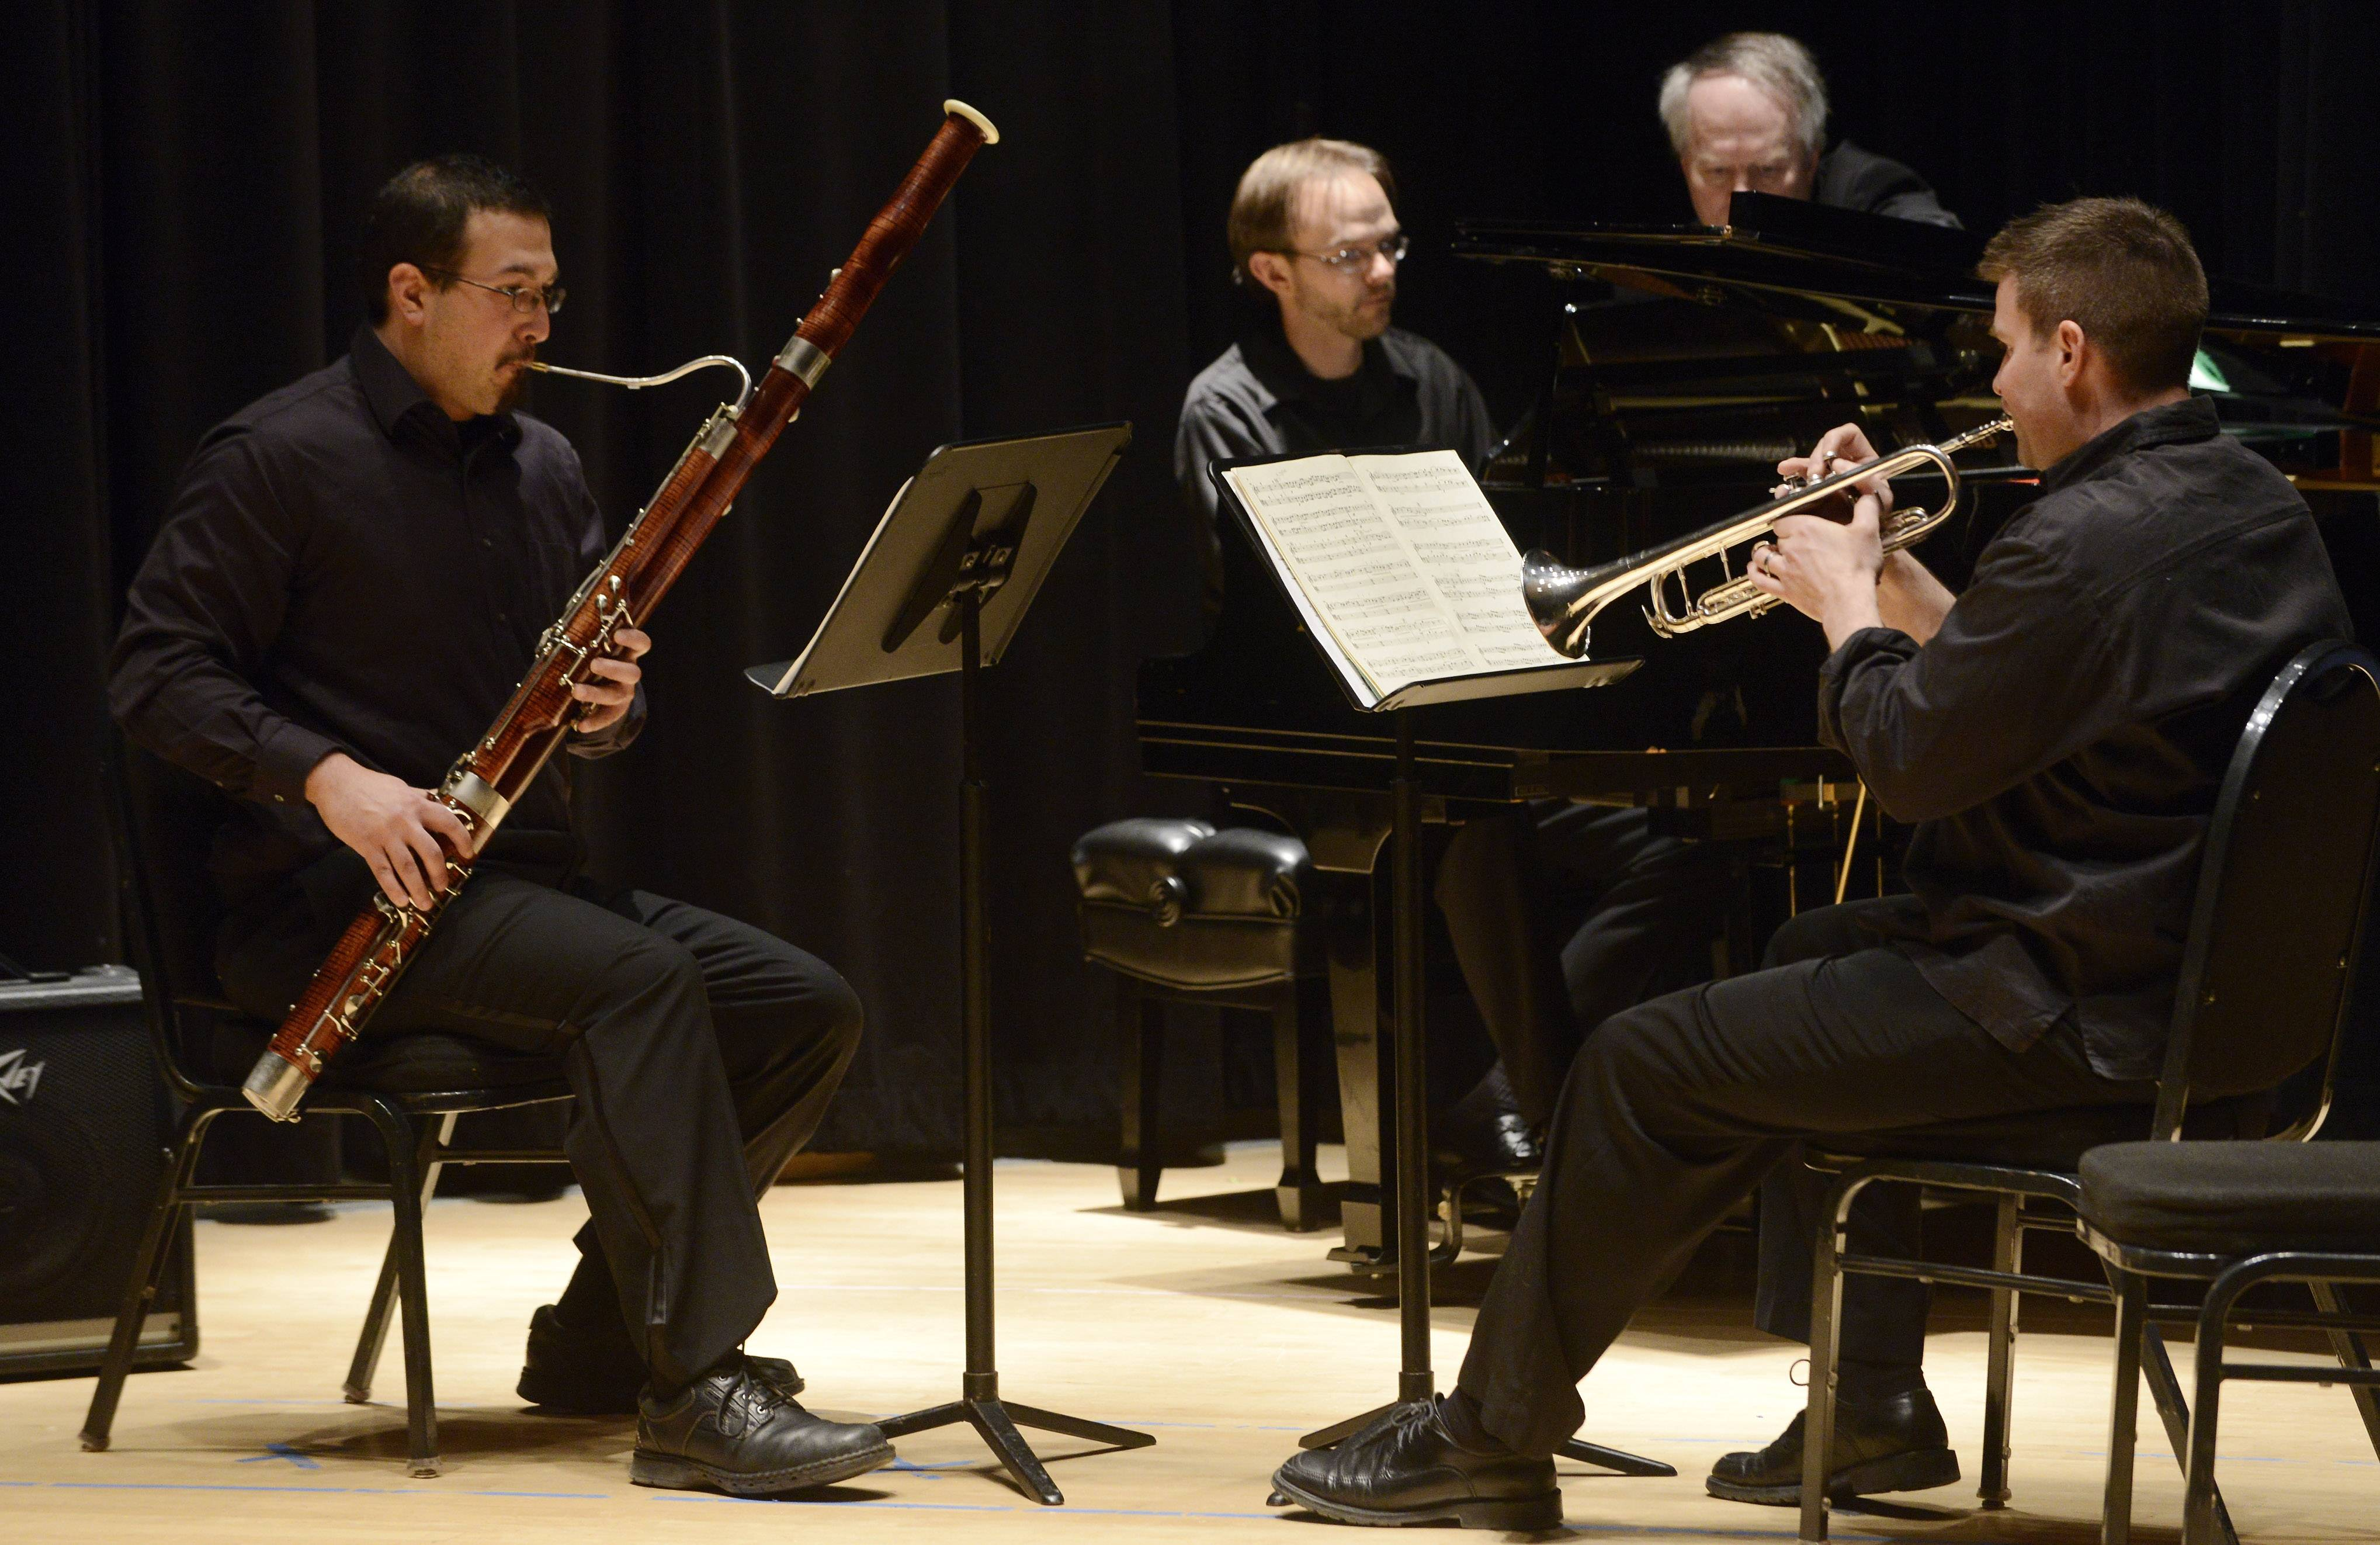 "Ricardo Vasquez on bassoon, Jason Flaks on trumpet, and David Anderson at the piano perform ""Concerto for Trumpet and Bassoon Allegro spiritoso"" by Paul Hindemith at Sunday's Elgin Youth Symphony Orchestra Faculty Benefit Recital at Elgin Community College."